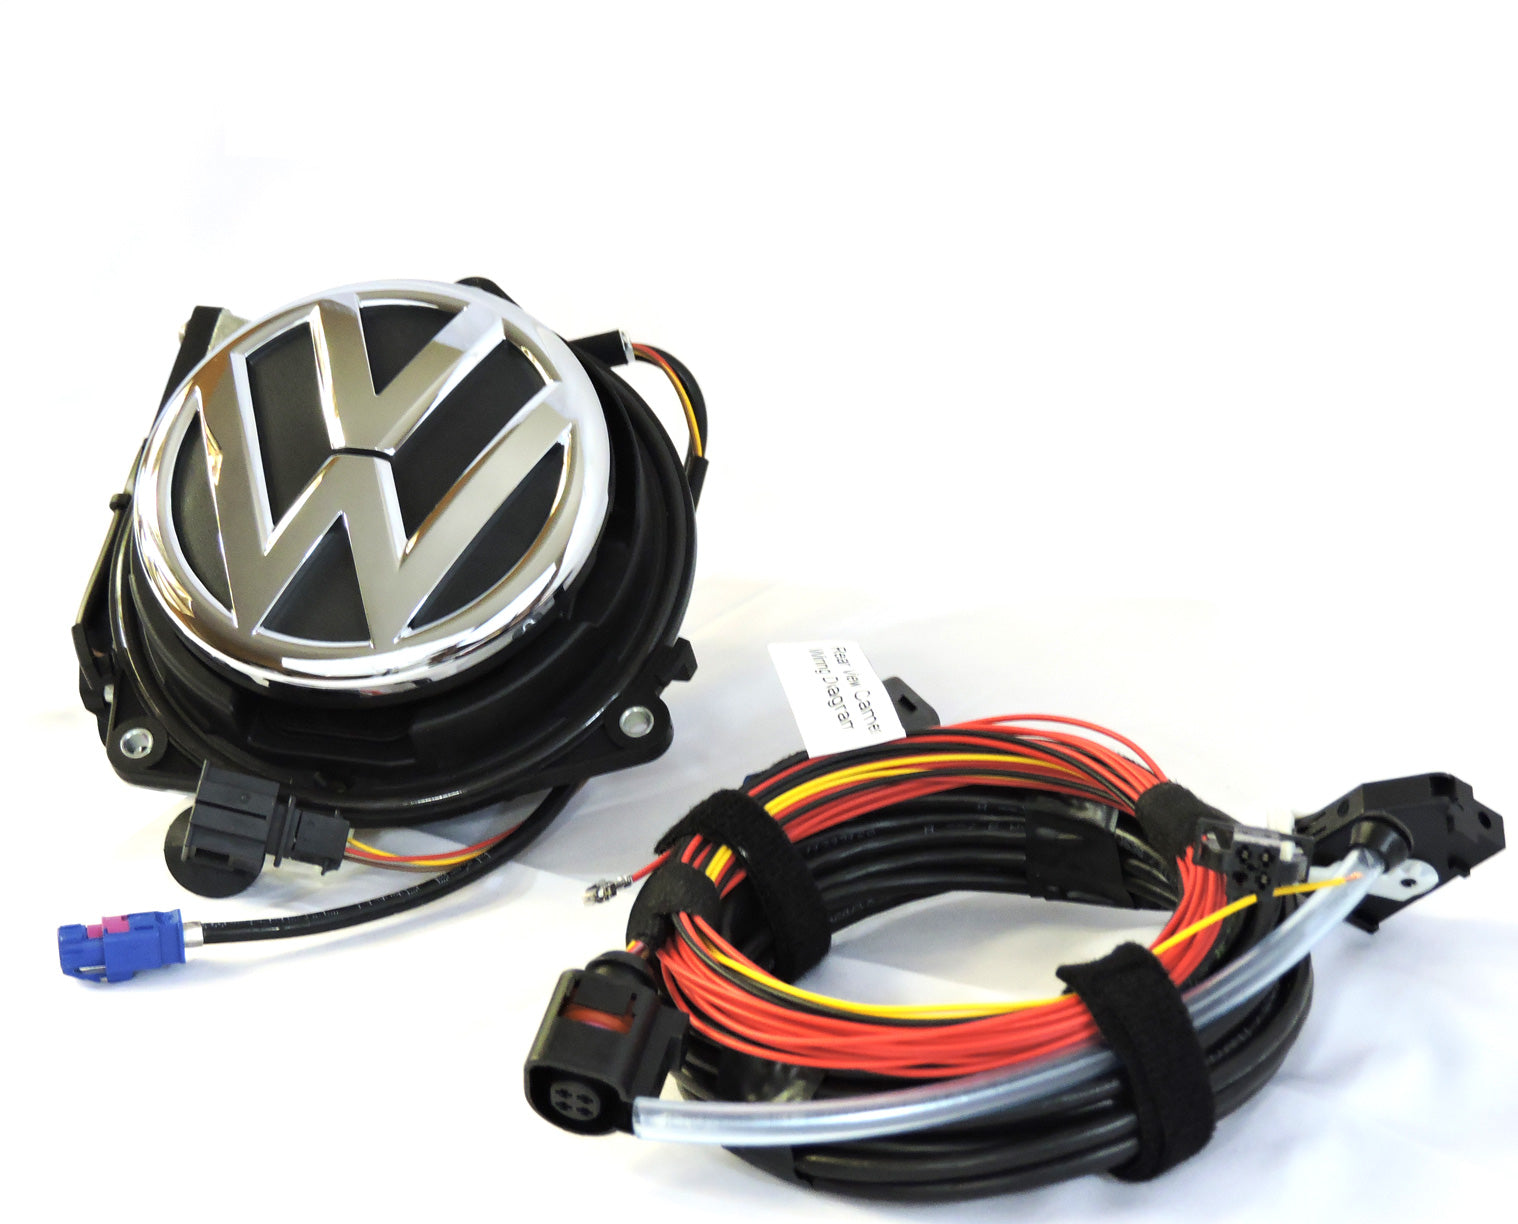 Volkswagen MK5/MK6 Emblem Rear View Camera Kit on